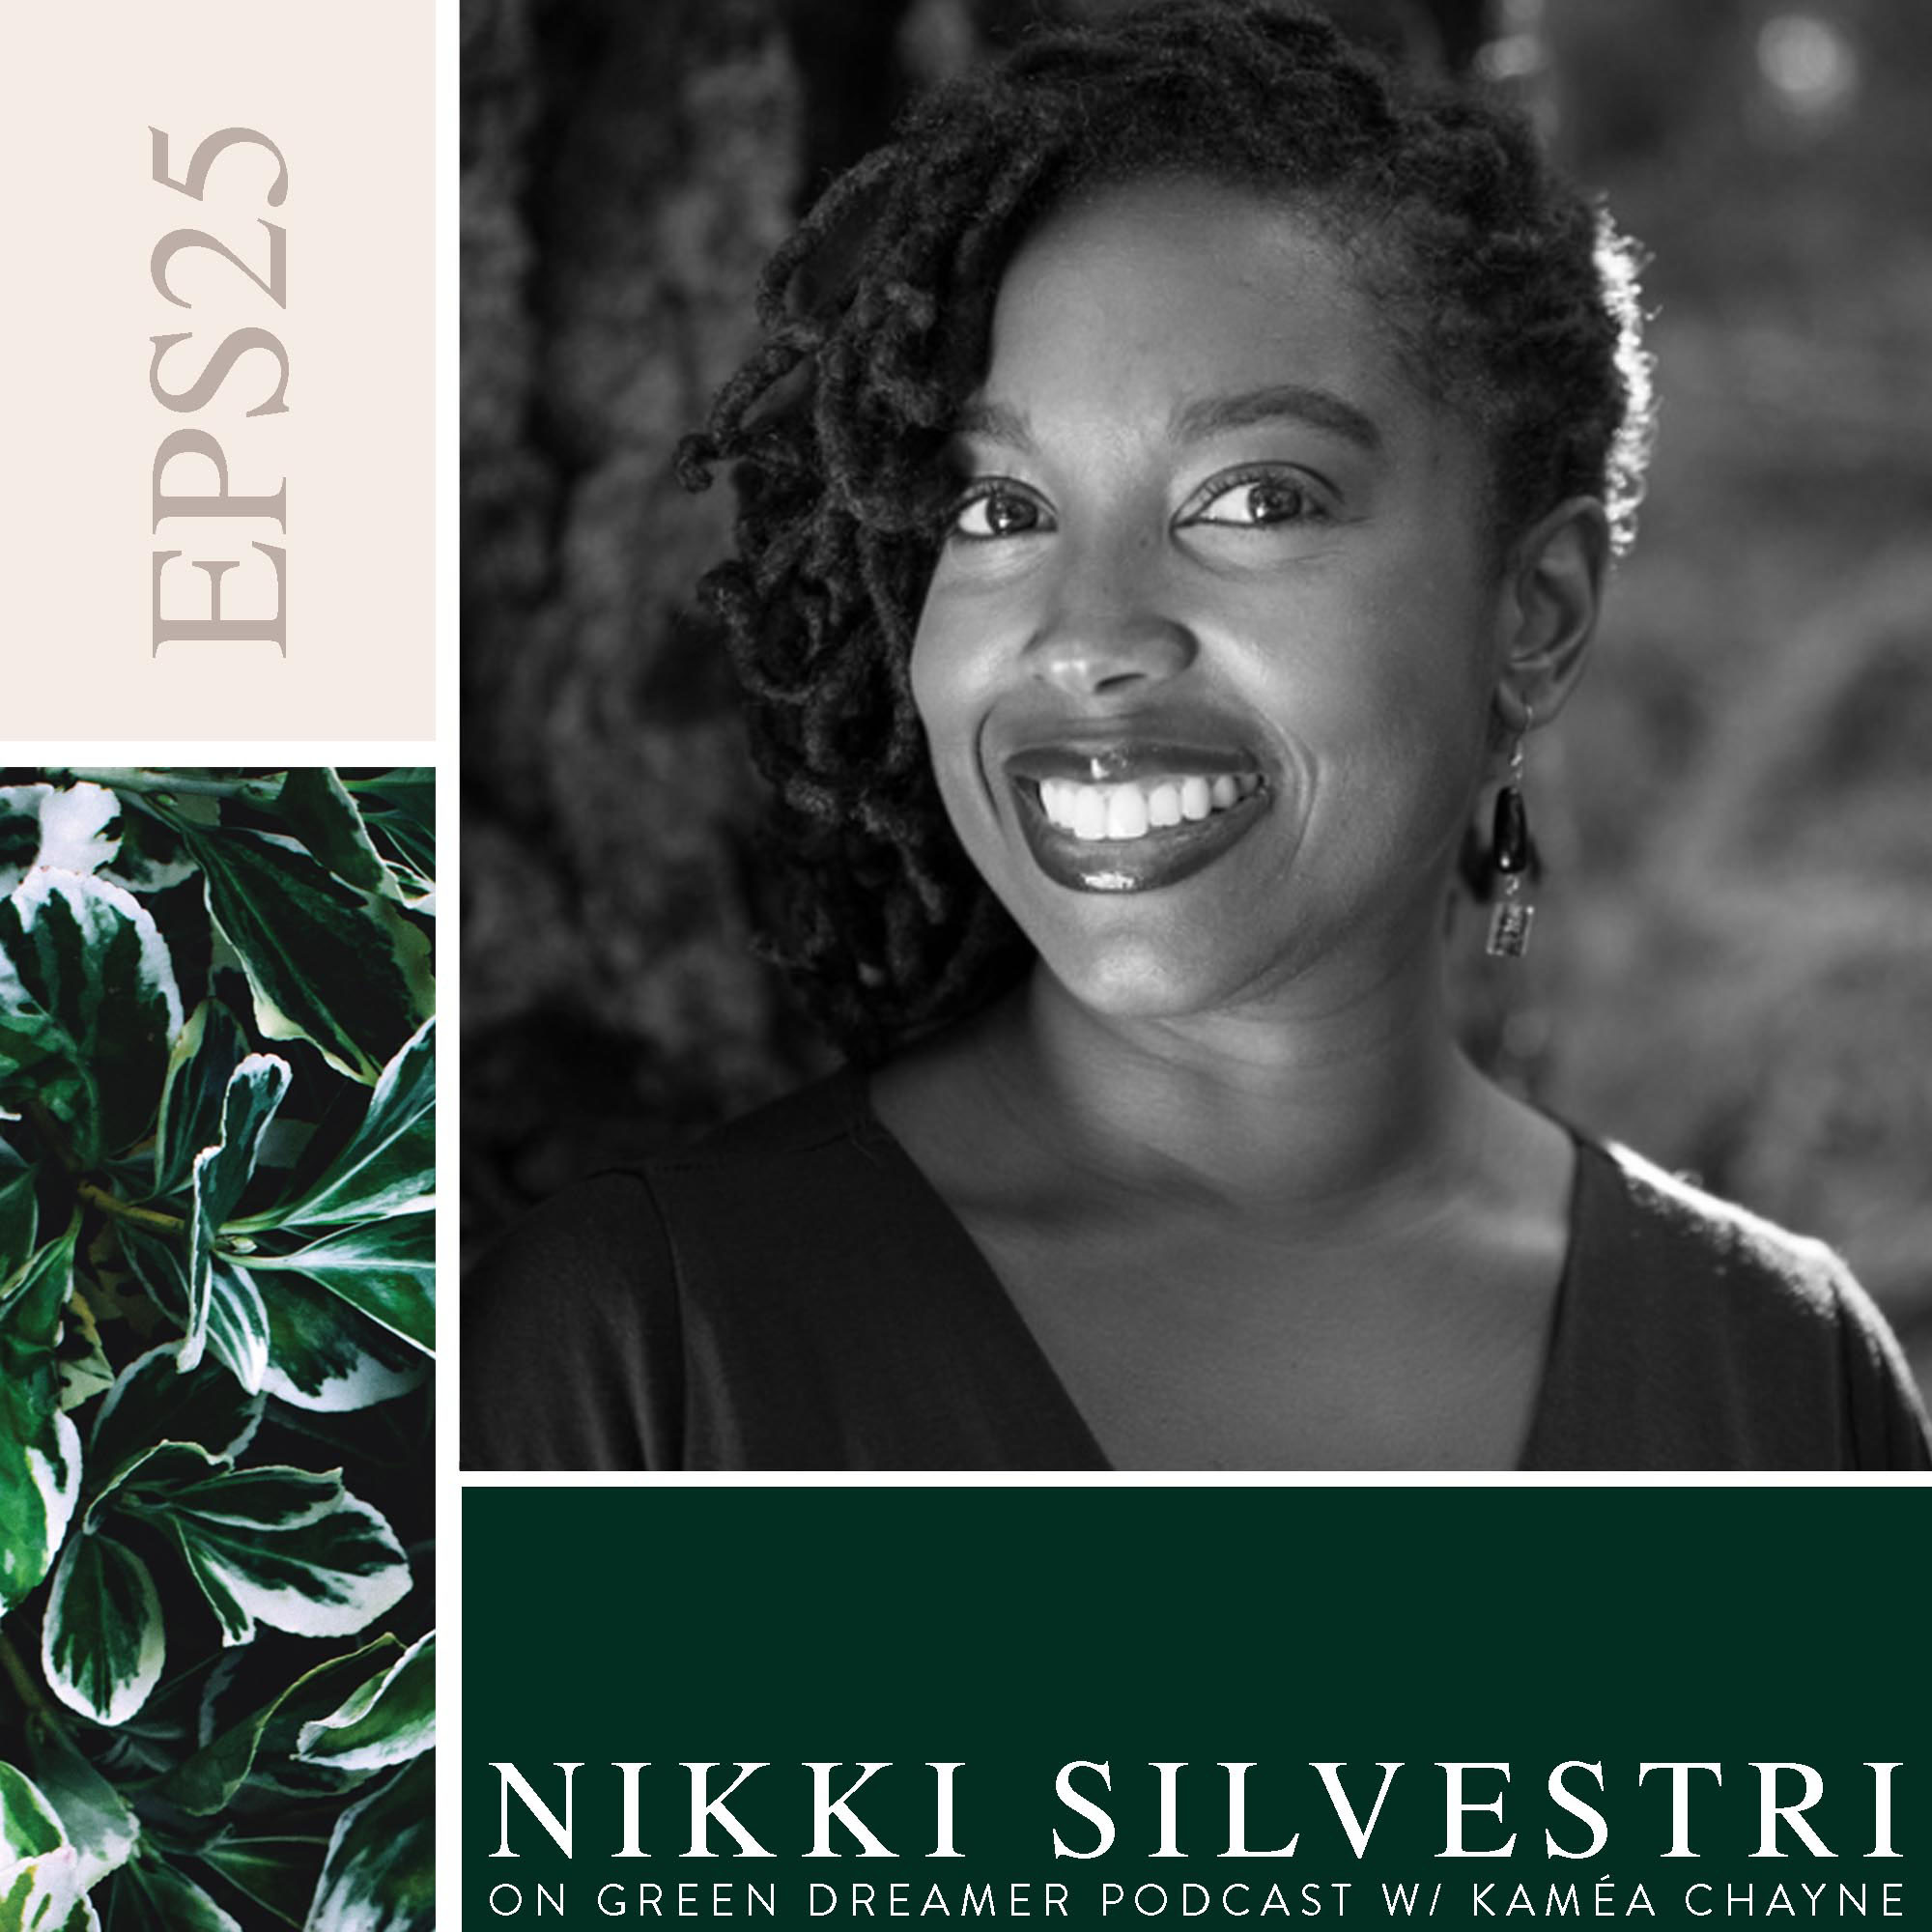 25) BW Nikki-Silvestri-of-Soil-and-Shadow-talks-sustainability-on-Green-Dreamer-Podcast-with-Kaméa-Chayne.jpg